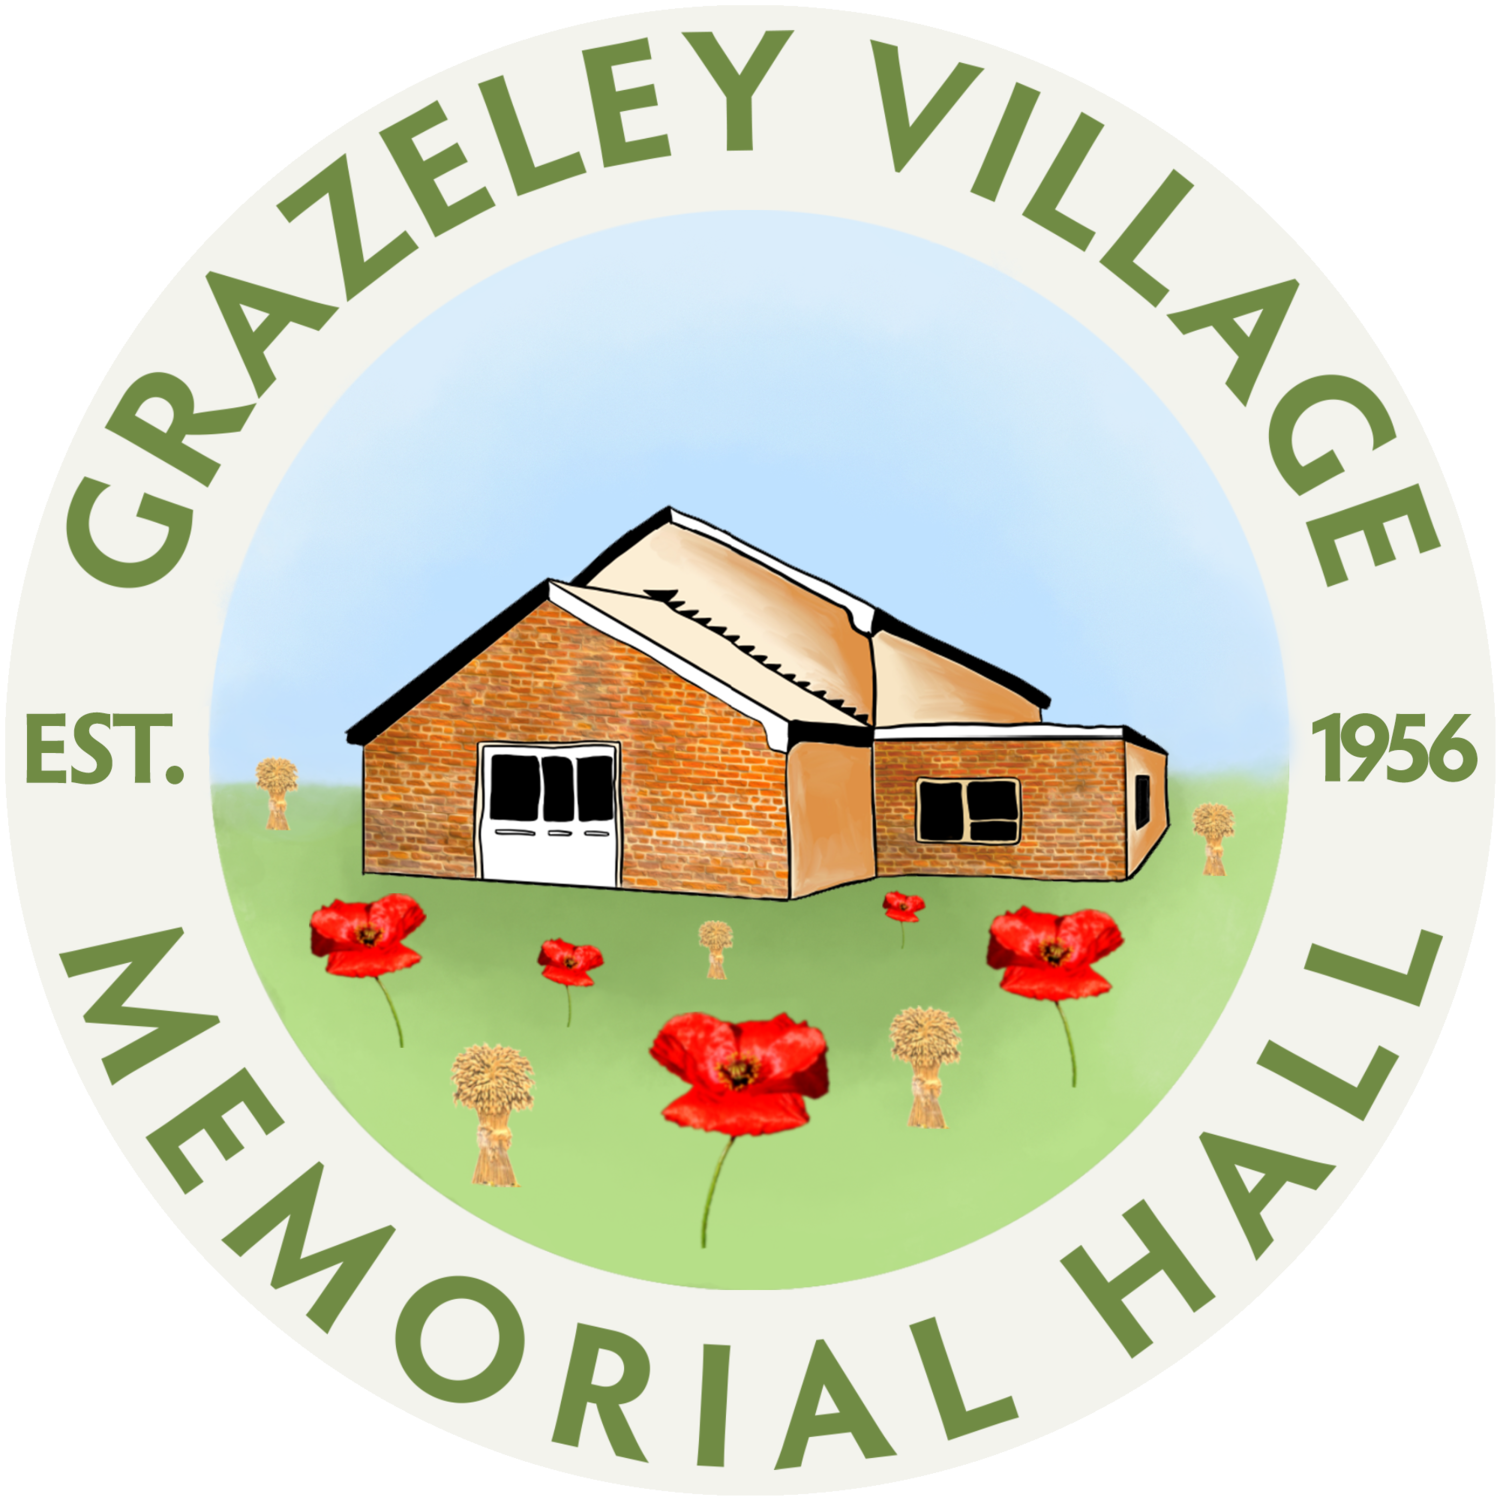 Grazeley Village Memorial Hall